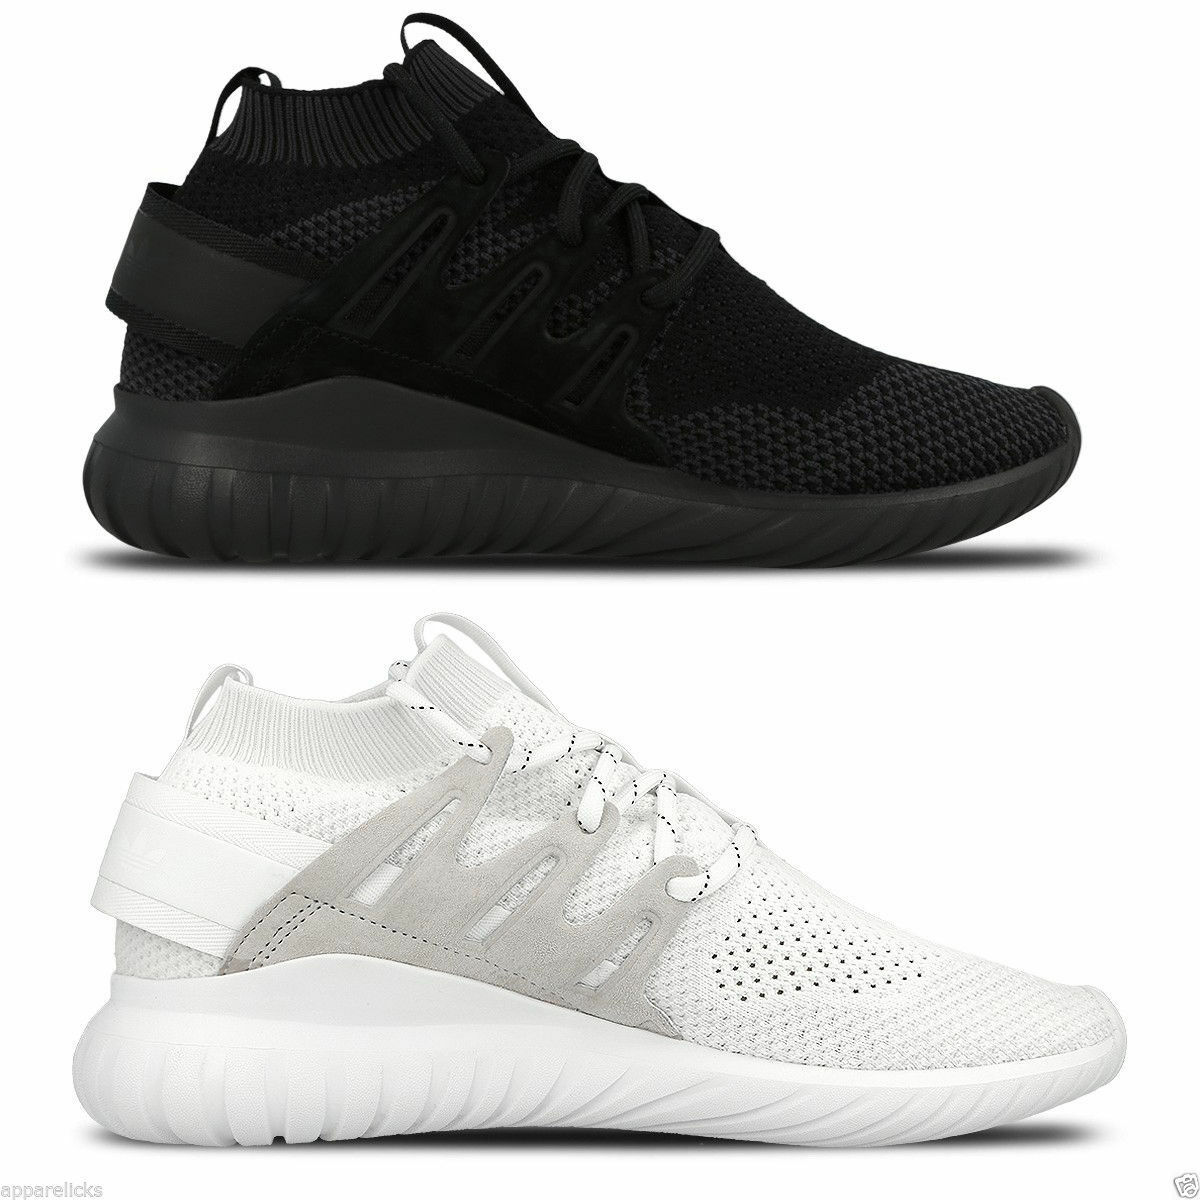 Adidas Originals Women's Tubular Nova Primeknit Trainers Trainers Trainers Fitness Gym Black White e1287d